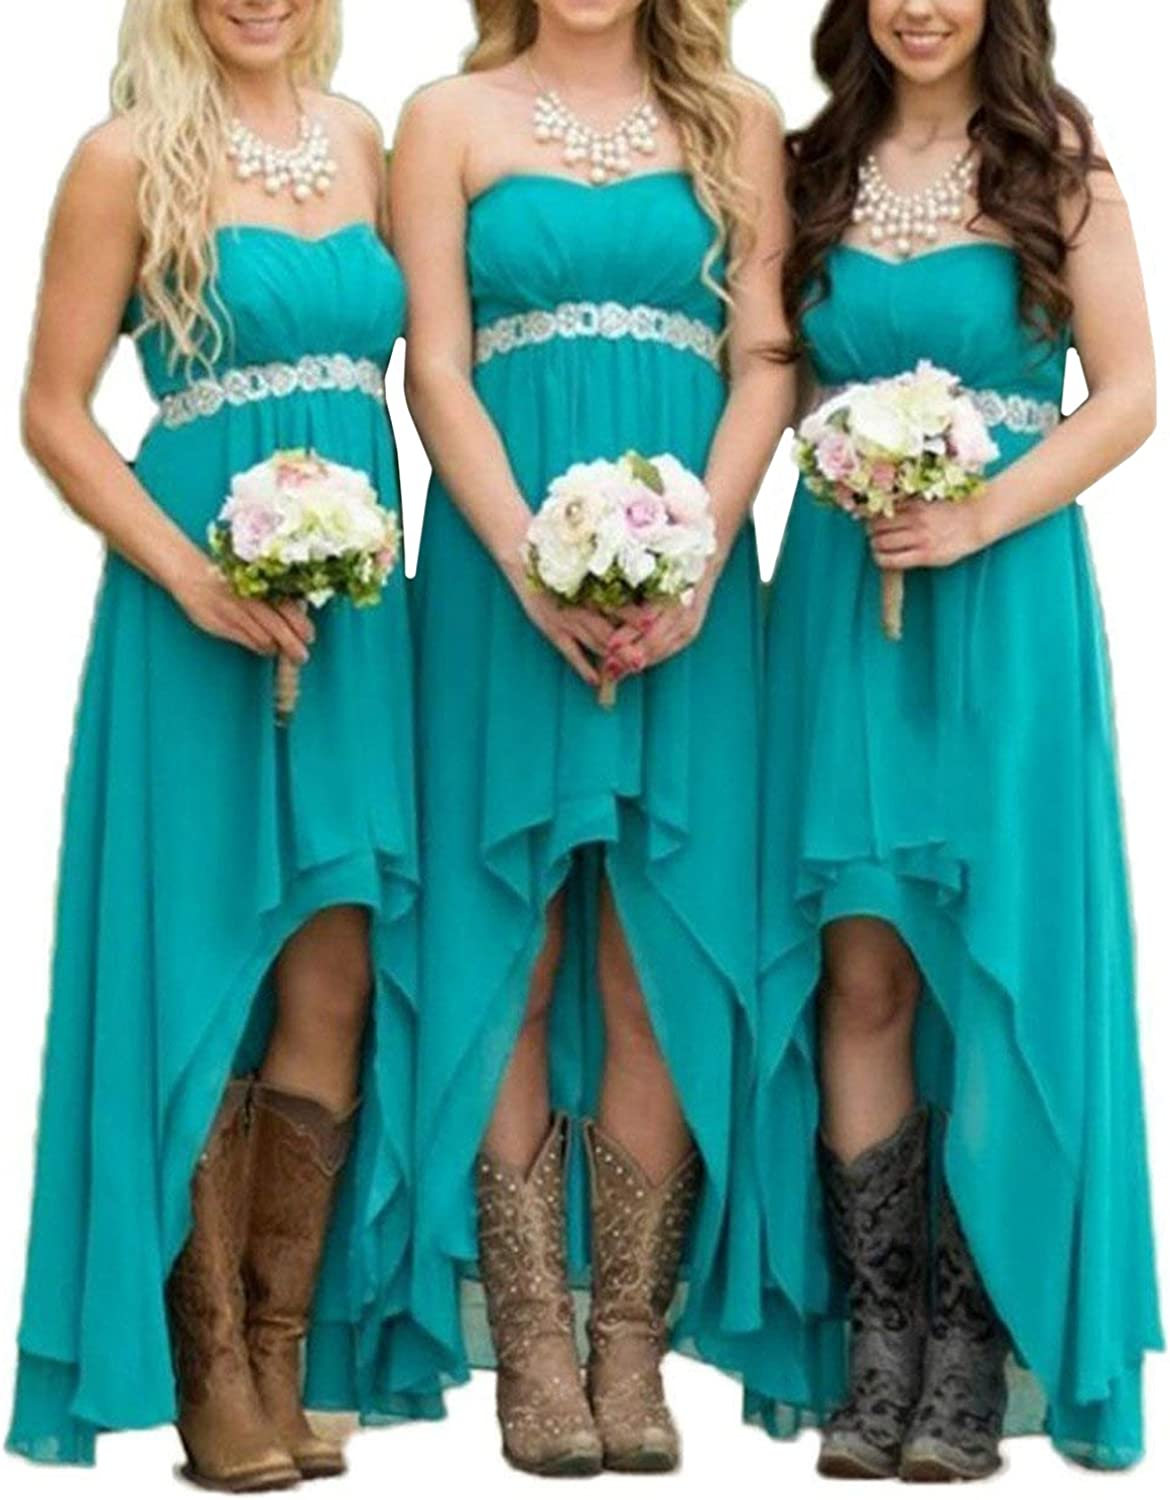 EUMI Chiffon Bridesmaid Dresses High Low Strapless Country Bridal Wedding Party Gowns